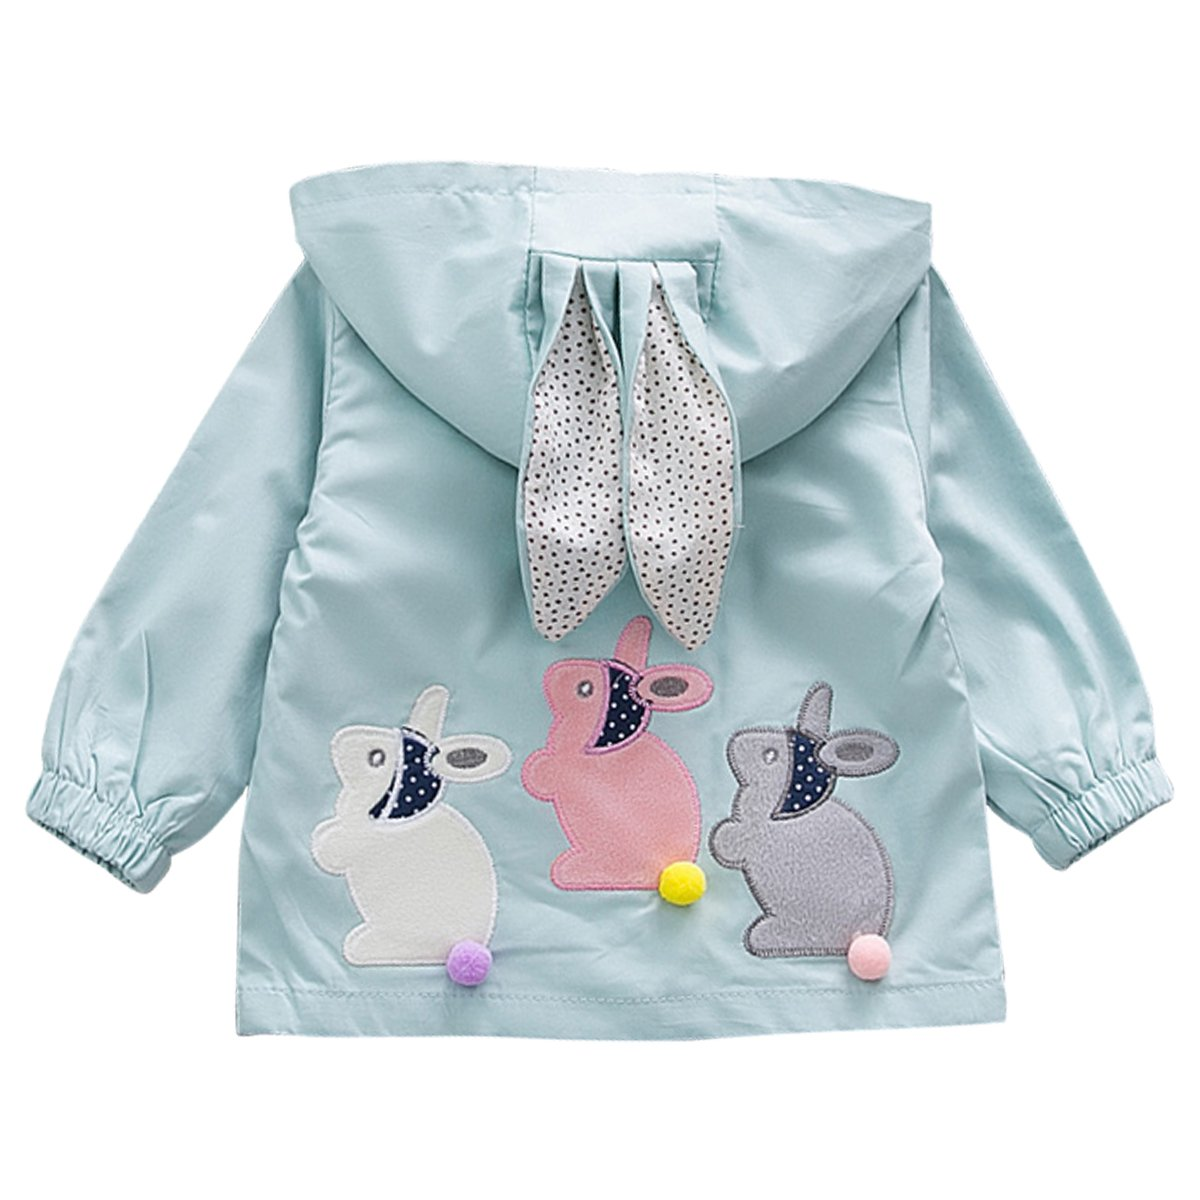 Kanodan Baby Girls Coat Toddler Sanded Fabric Jacket Cute Rabbit Ears Hooded Outerwear